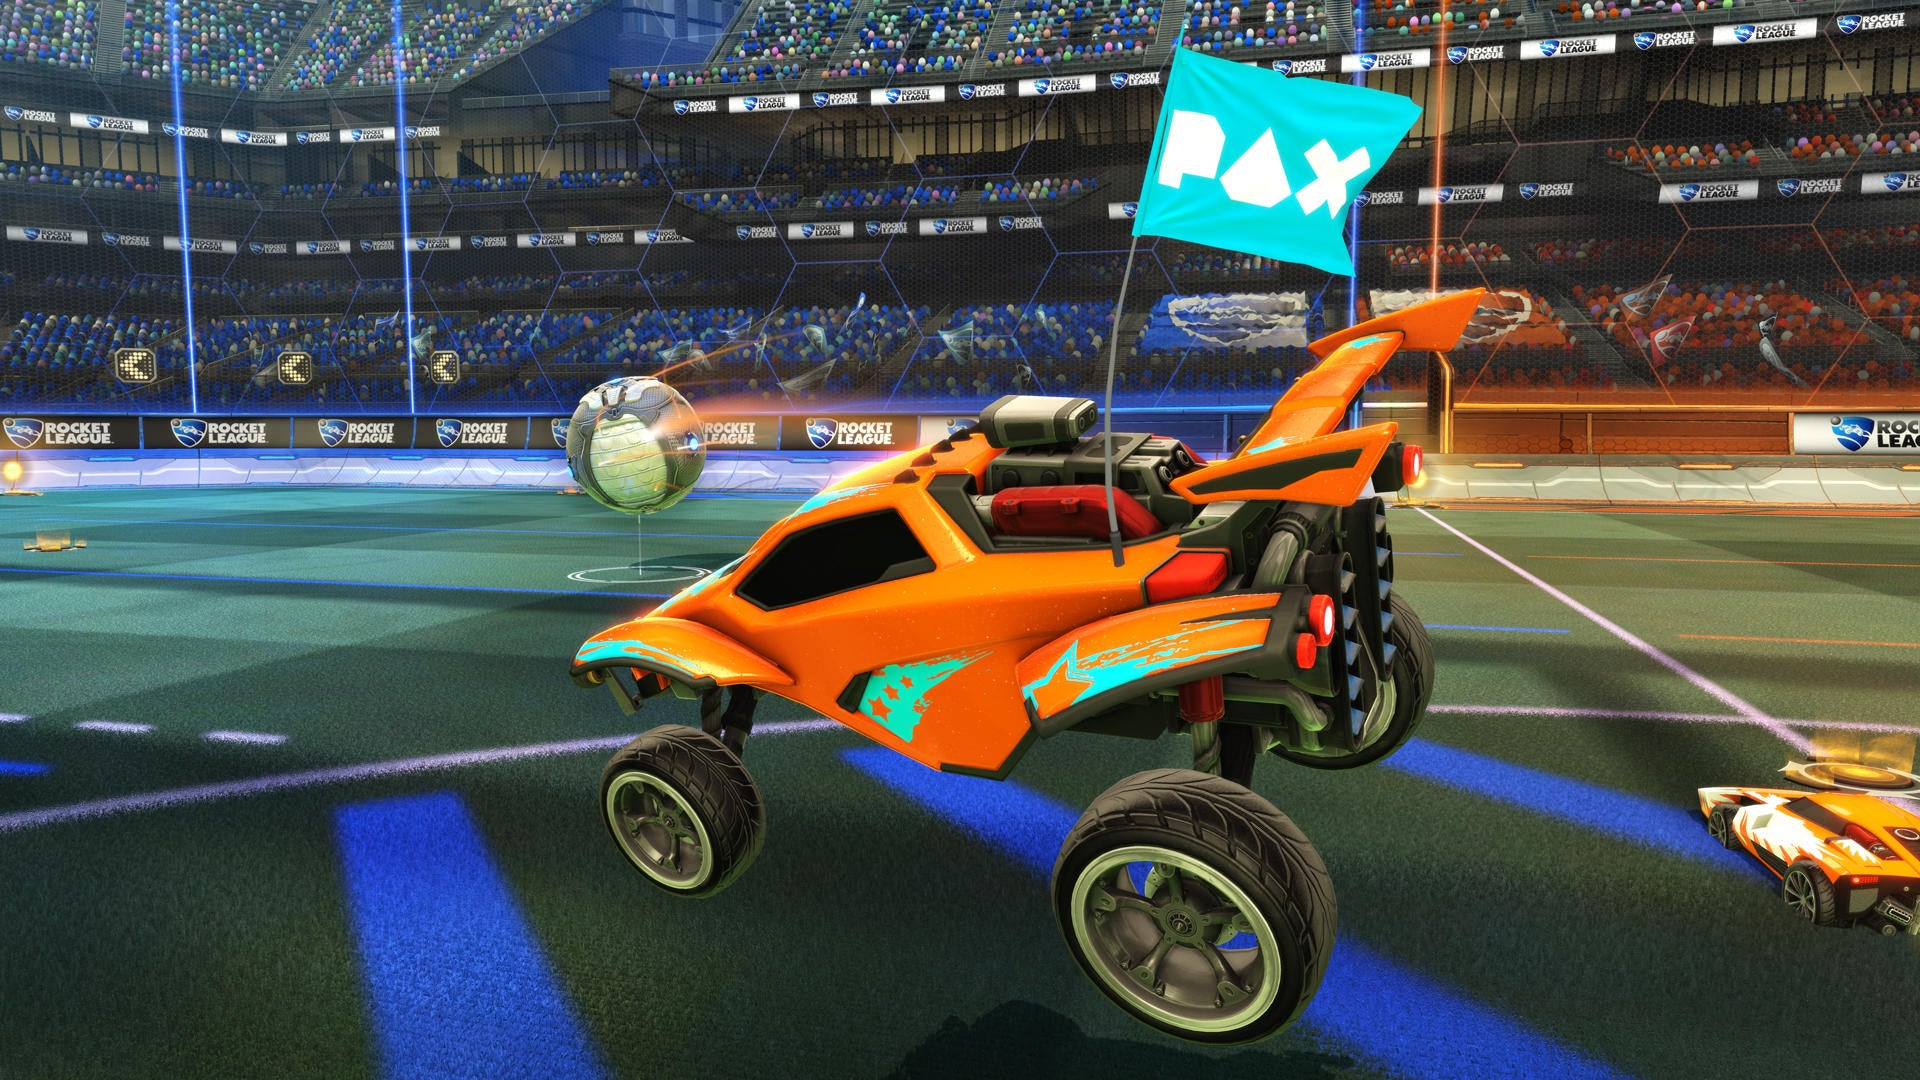 Rocket League at PAX West 2016 Image